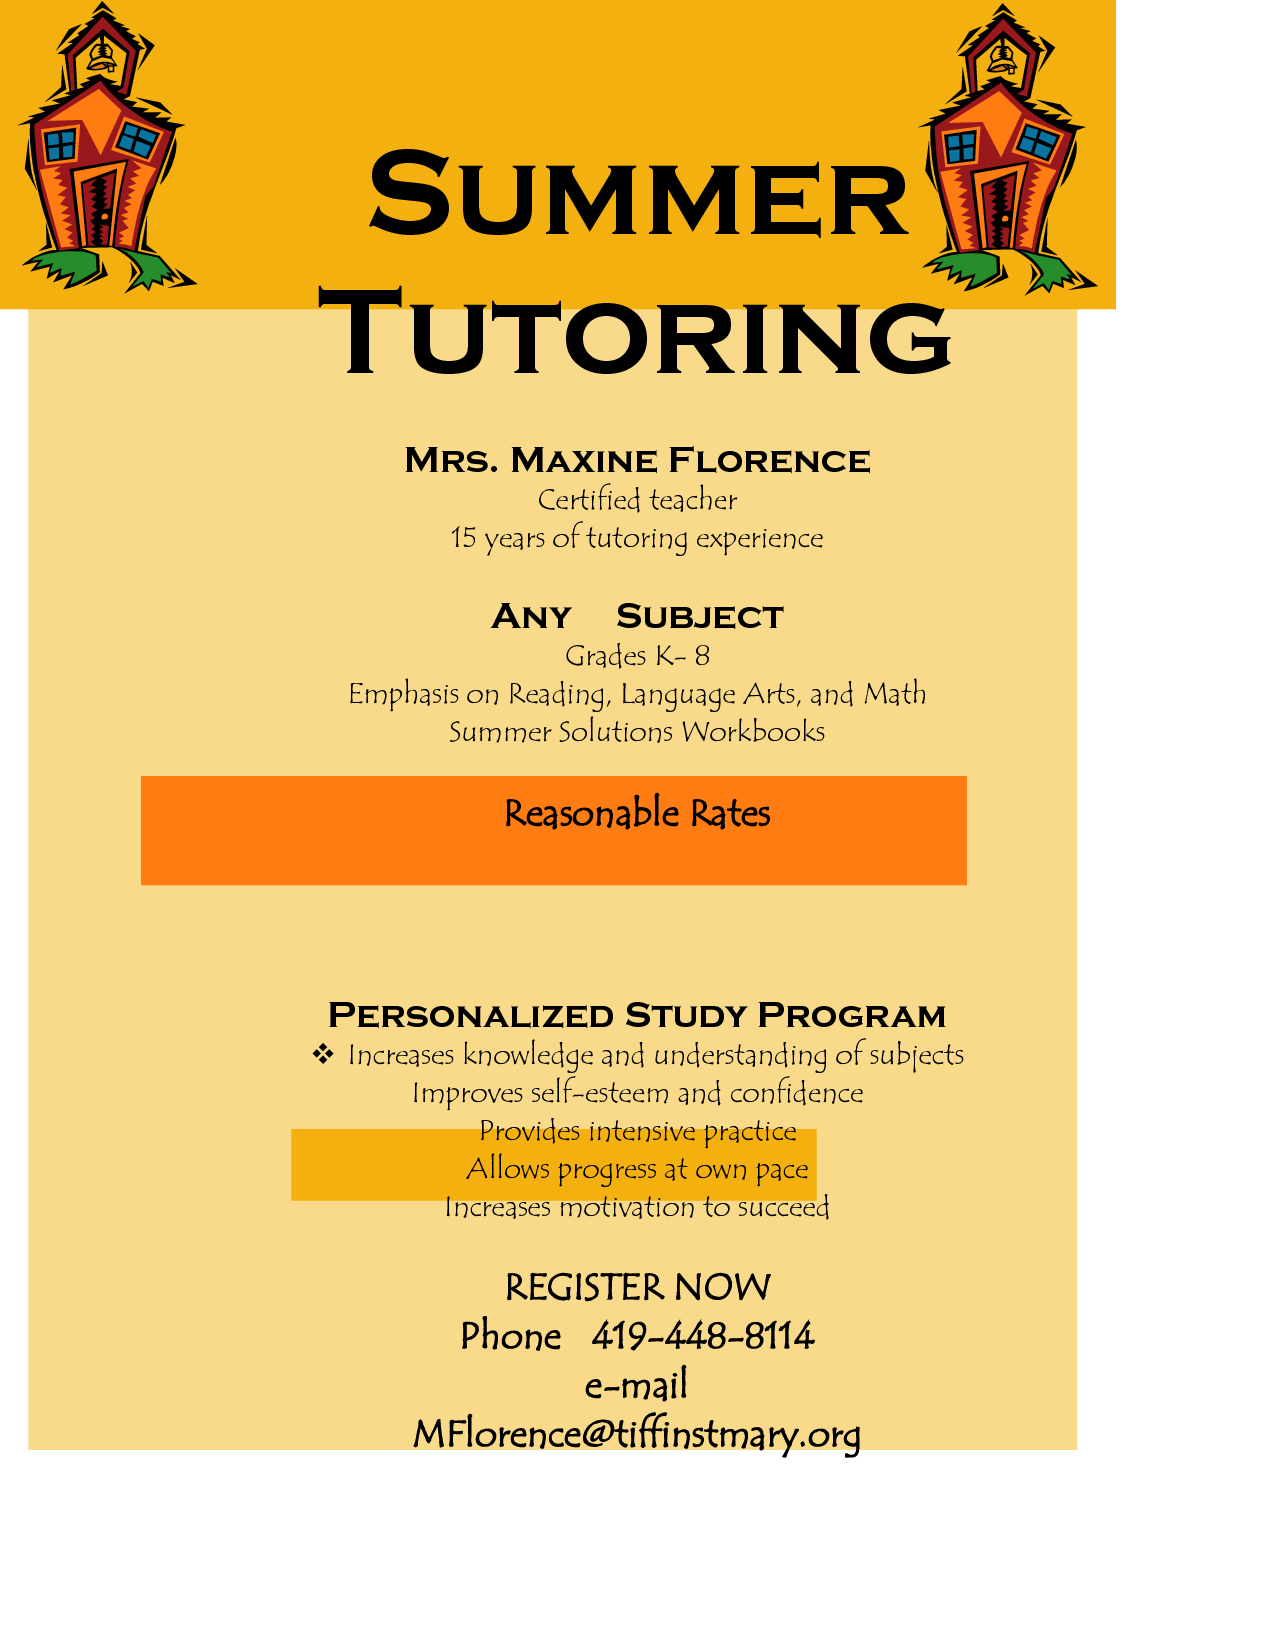 flyer for tutoring services offers community programs and services